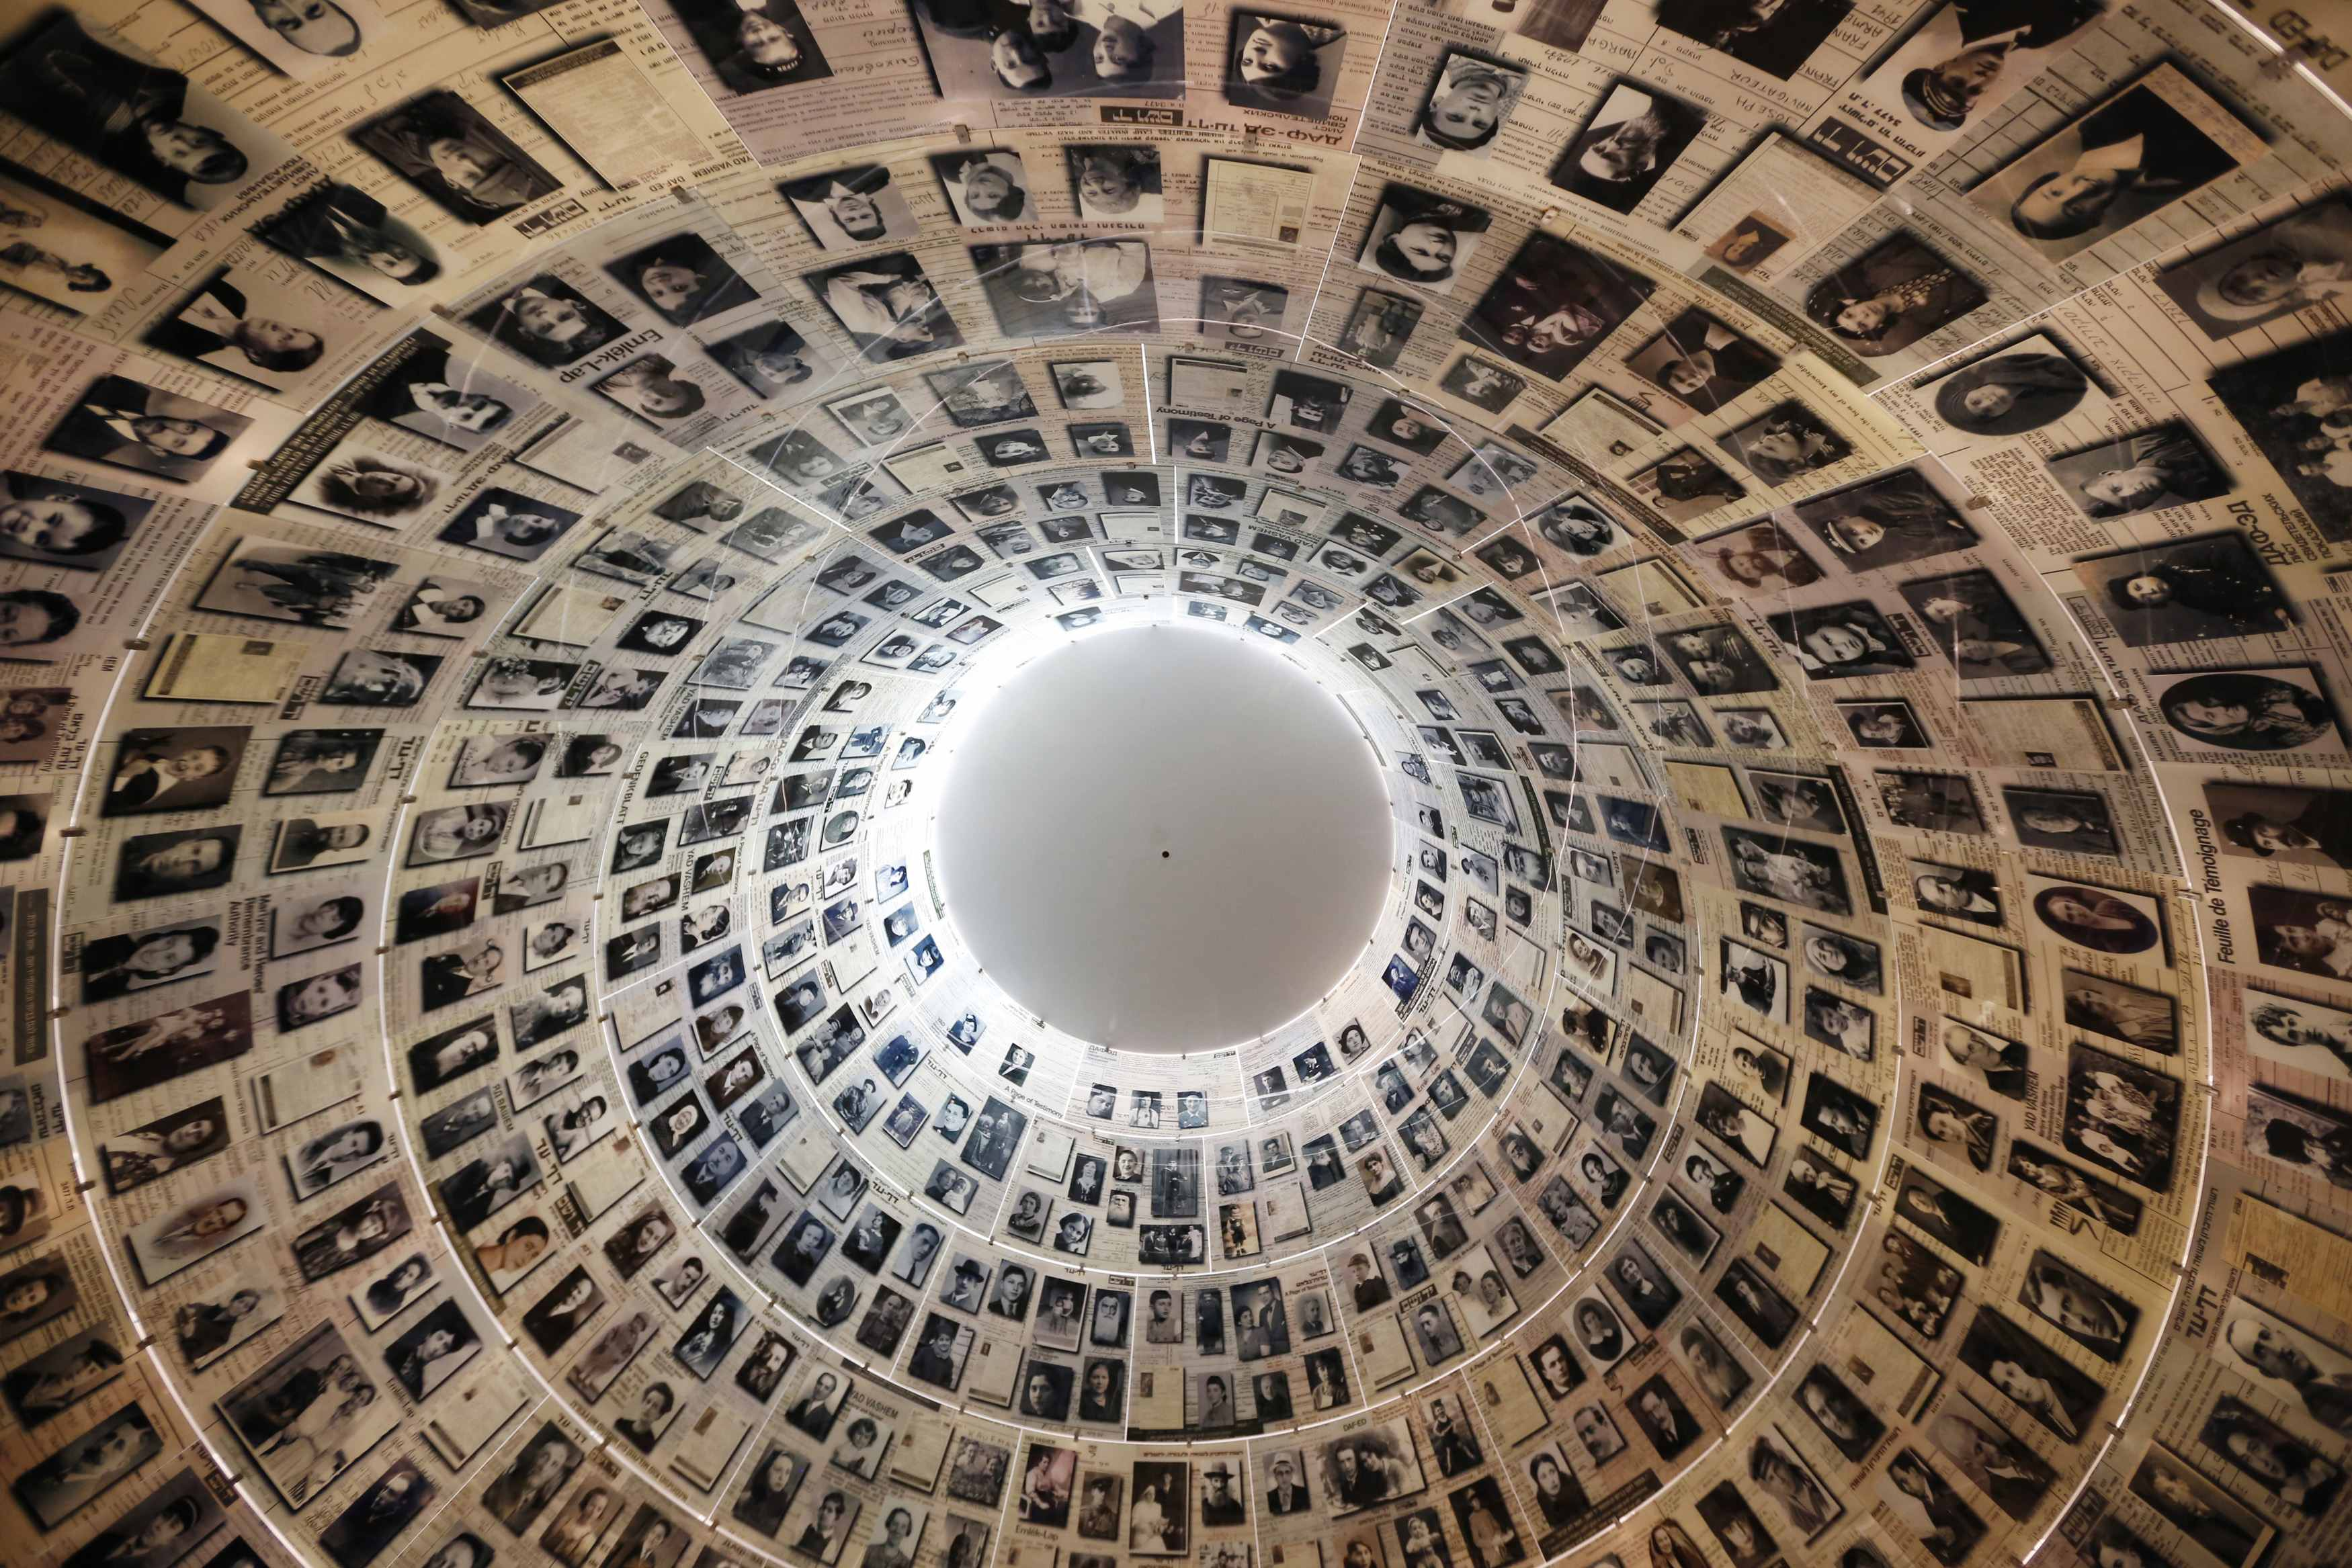 Yad Vashem Holocaust Memorial in Jerusalem, March 22, 2013. REUTERS/Jason Reed